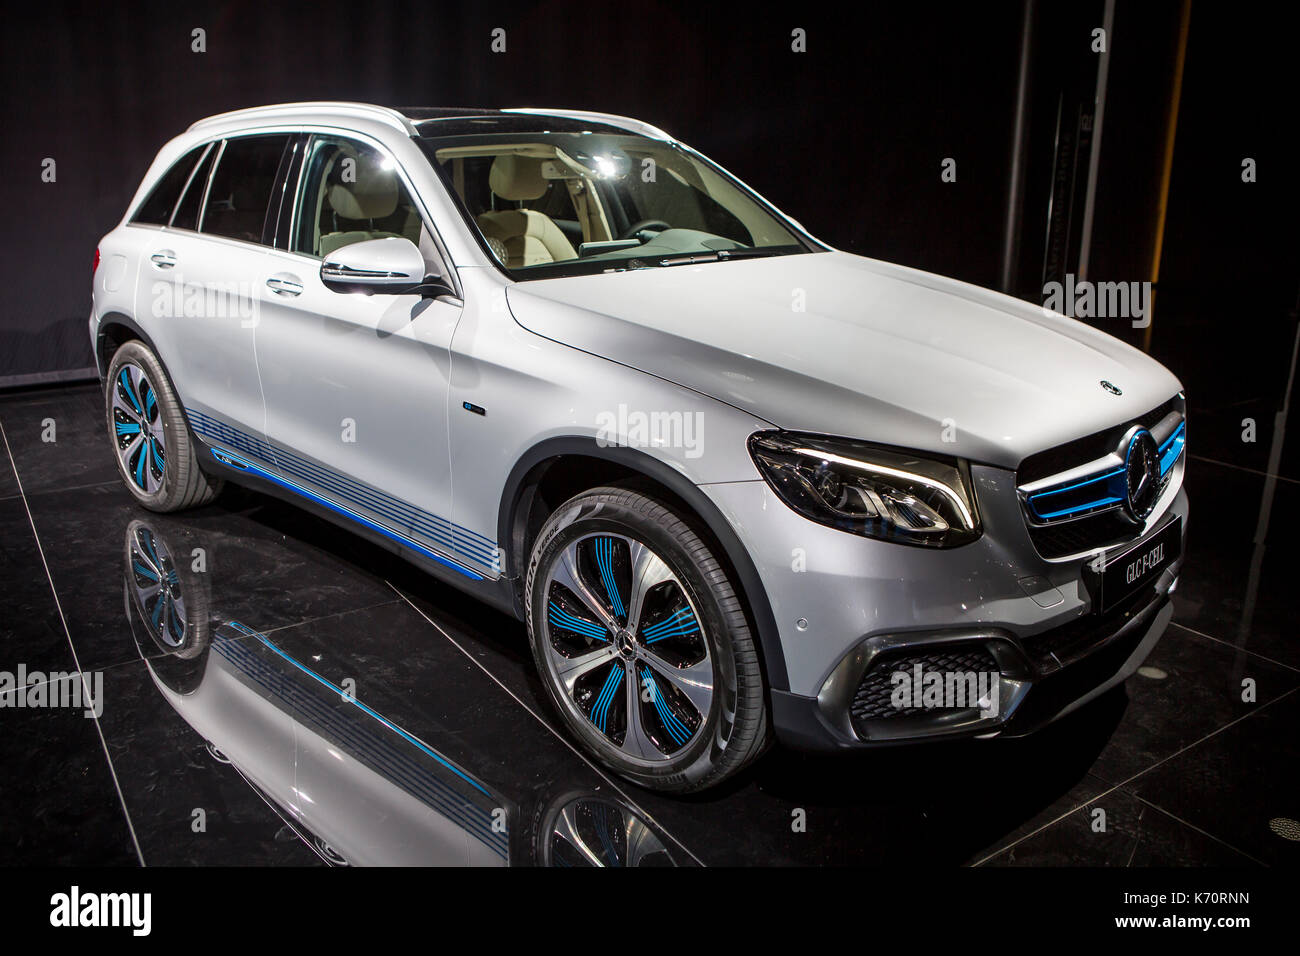 Frankfurt, Germany. 12th September, 2017. International Motor Show 2017 (IAA, Internationale Automobil-Ausstellung), Press Day: Mercedes GLC F-Cell, plugin-hybrid premium SUV with fuel-cell and battery power. Credit: Christian Lademann - Stock Image